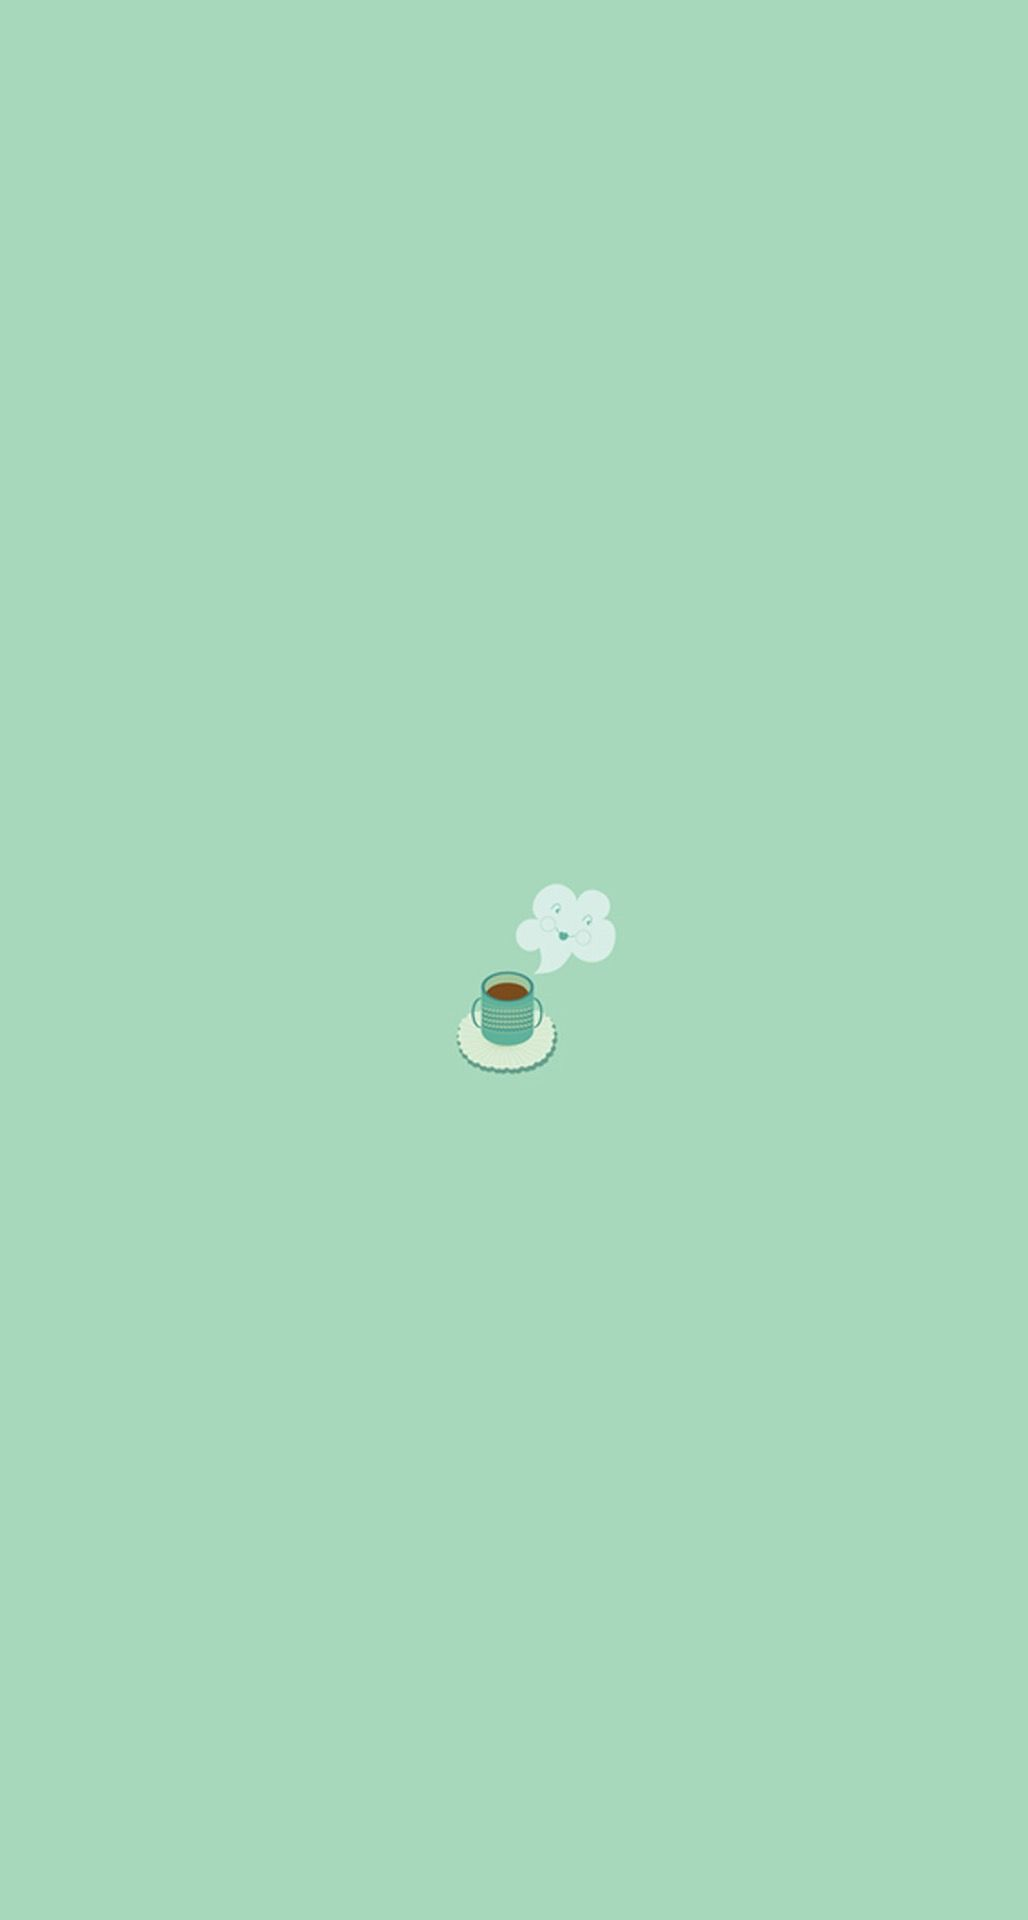 Get Best Coffee Phone Wallpaper HD This Month by availableideas.com